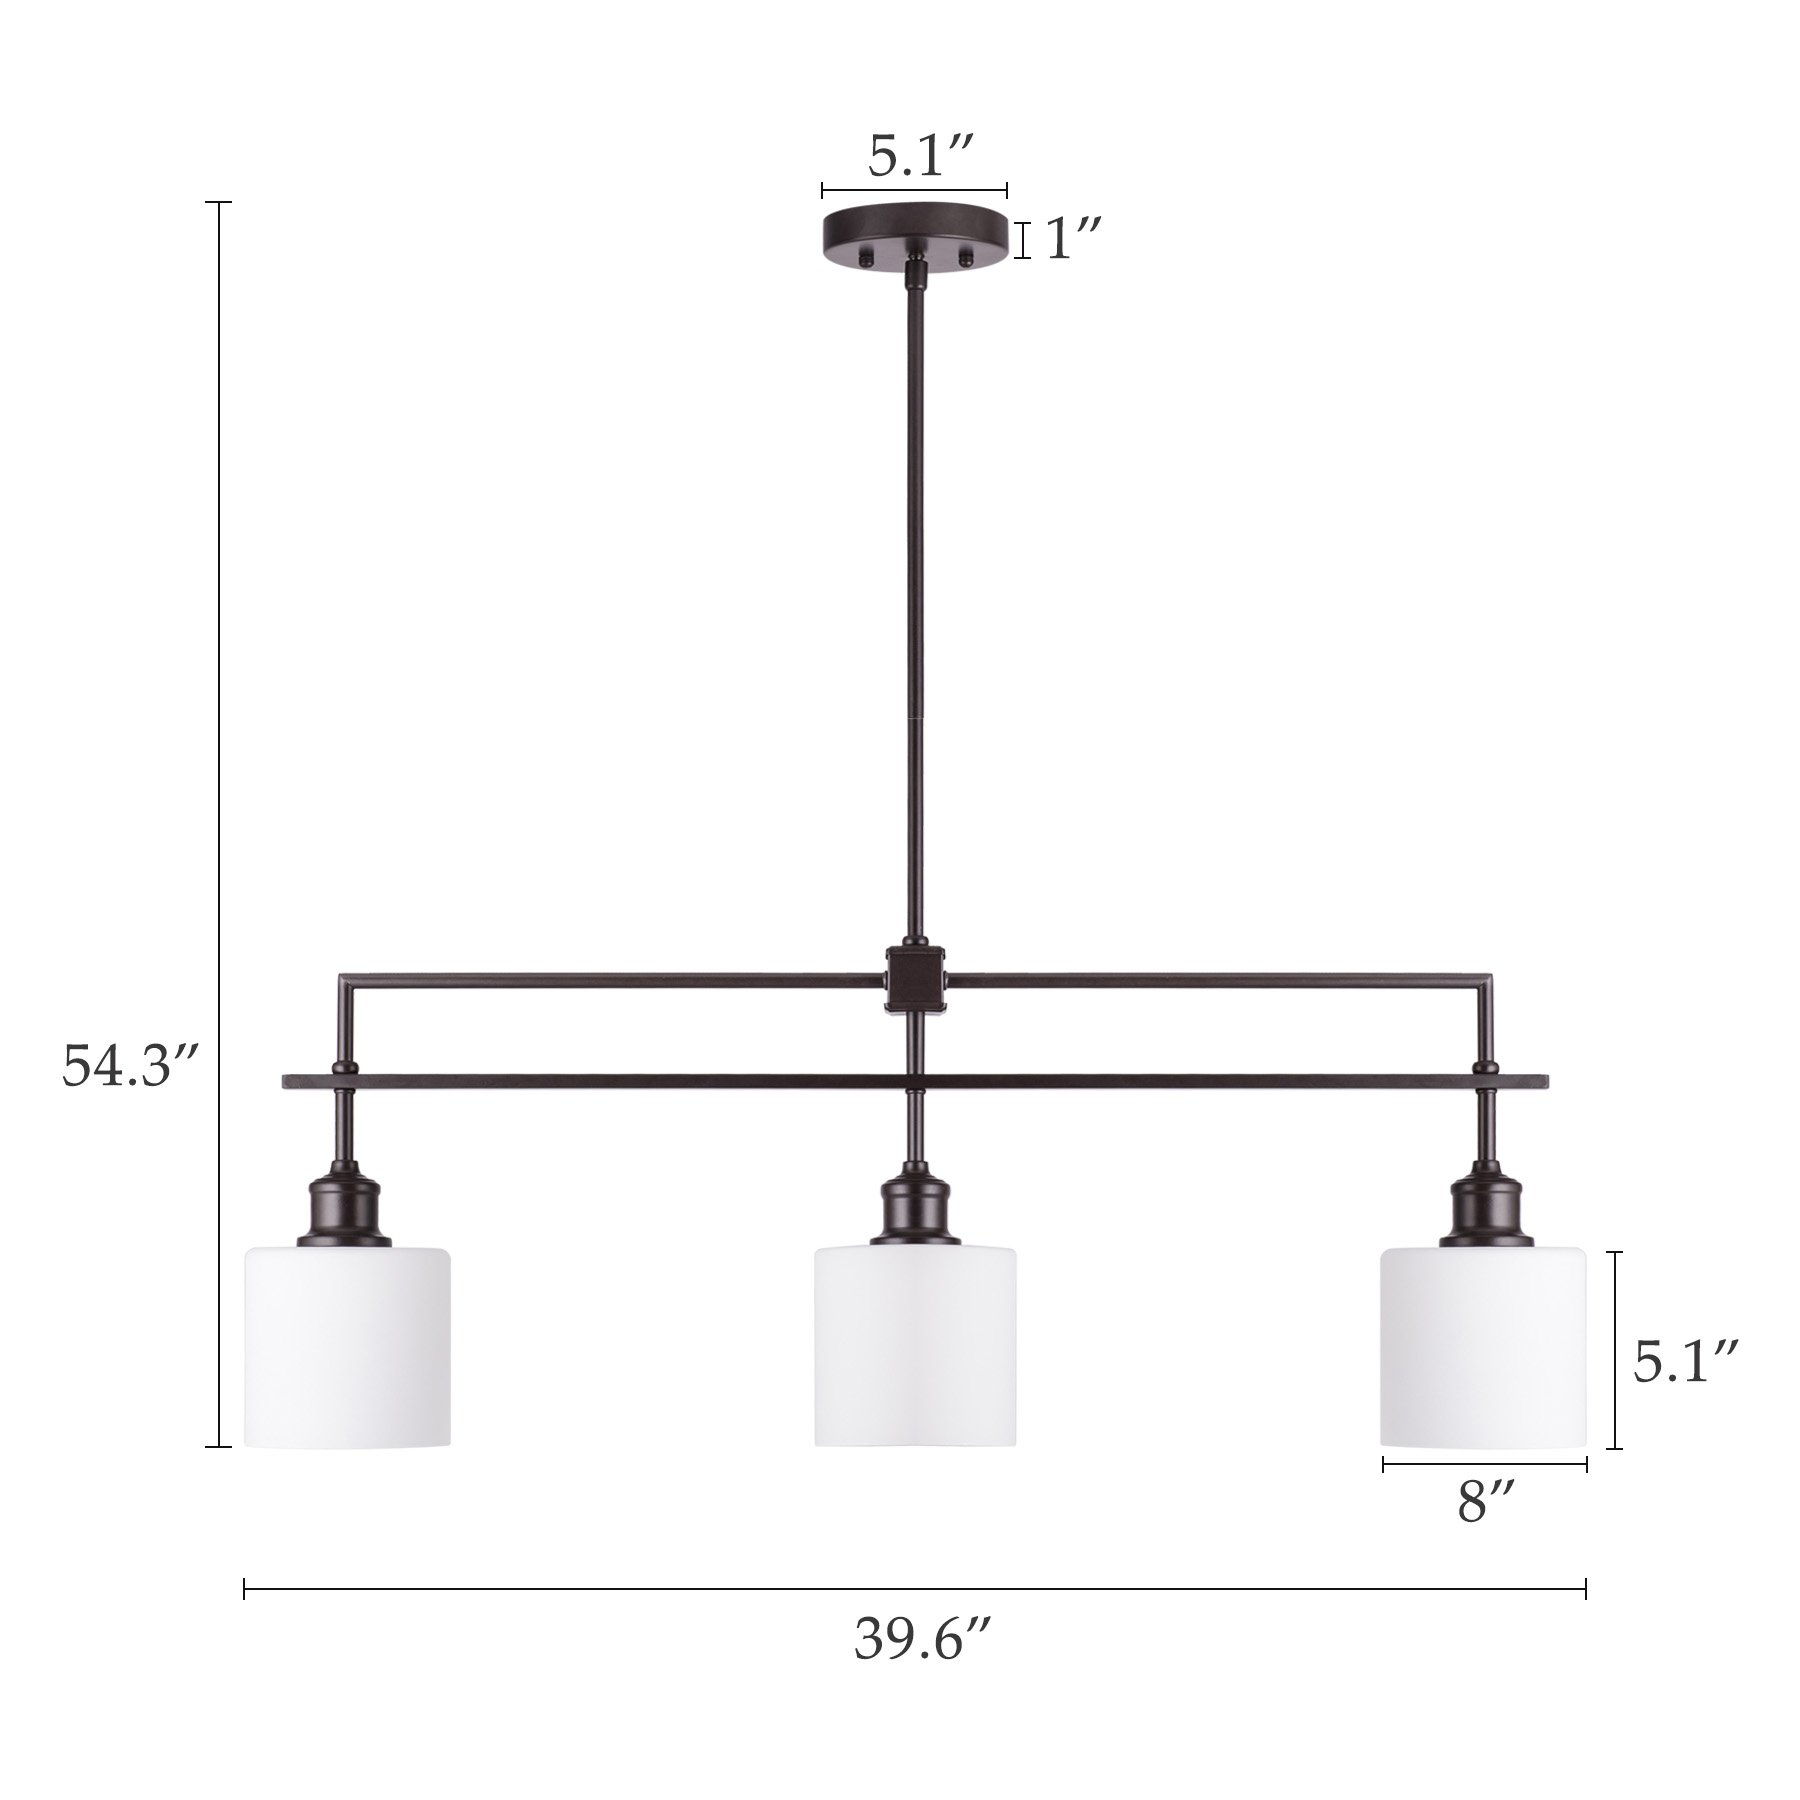 CO-Z Oil Rubbed Bronze Kitchen Island Lighting, 3-Light Linear Pendant Island Chandelier for Billiard Pool Table Dining Room Counter Foyer, Modern Hanging Ceiling Light Fixture with Opal Glass Shade by CO-Z (Image #7)